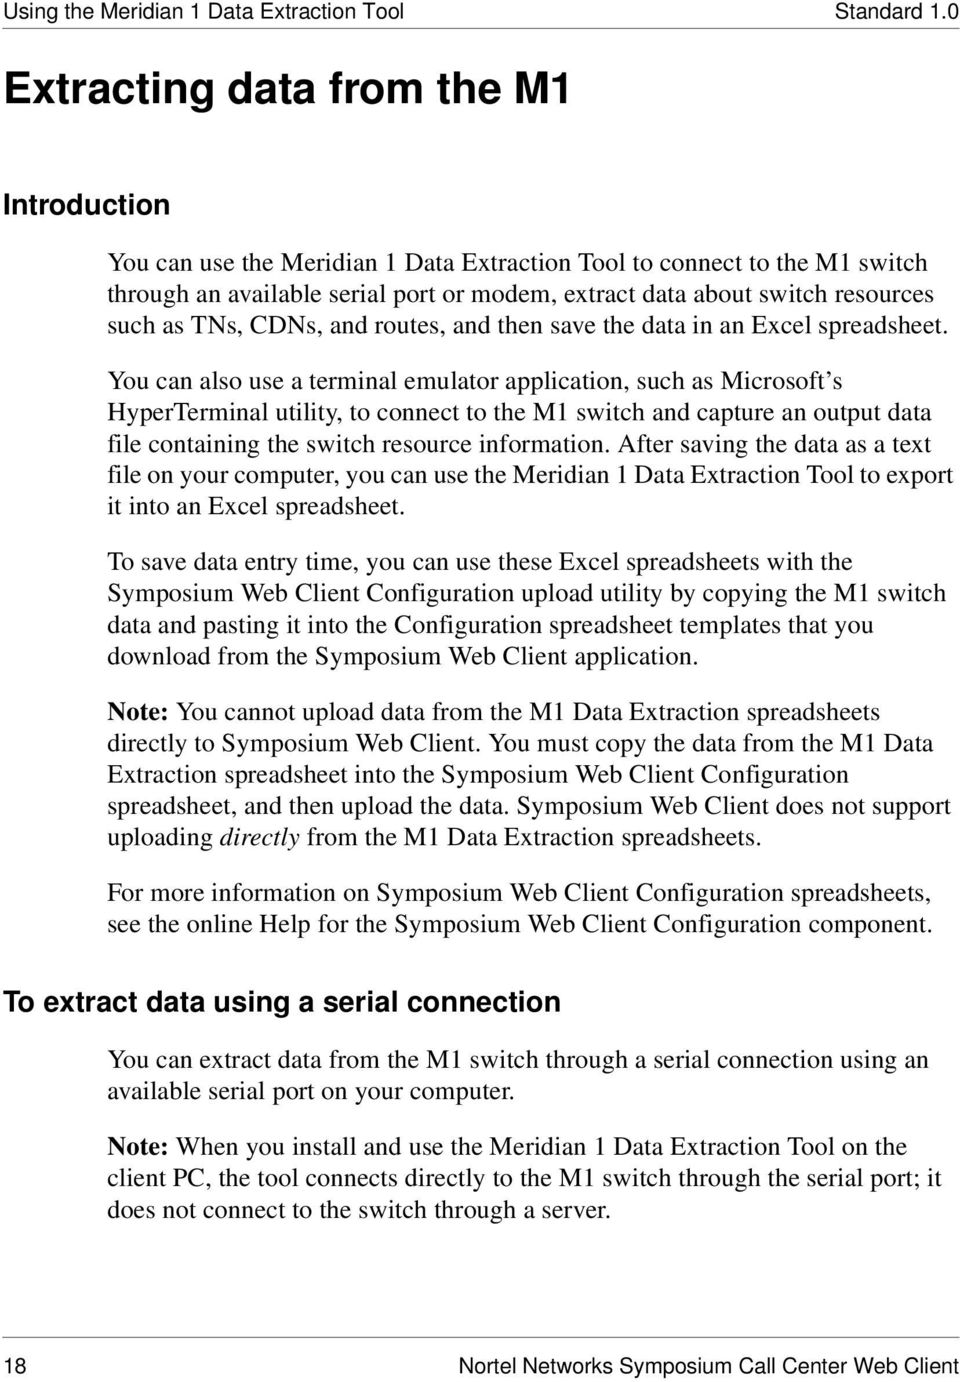 Nortel Networks Symposium Call Center Web Client Data